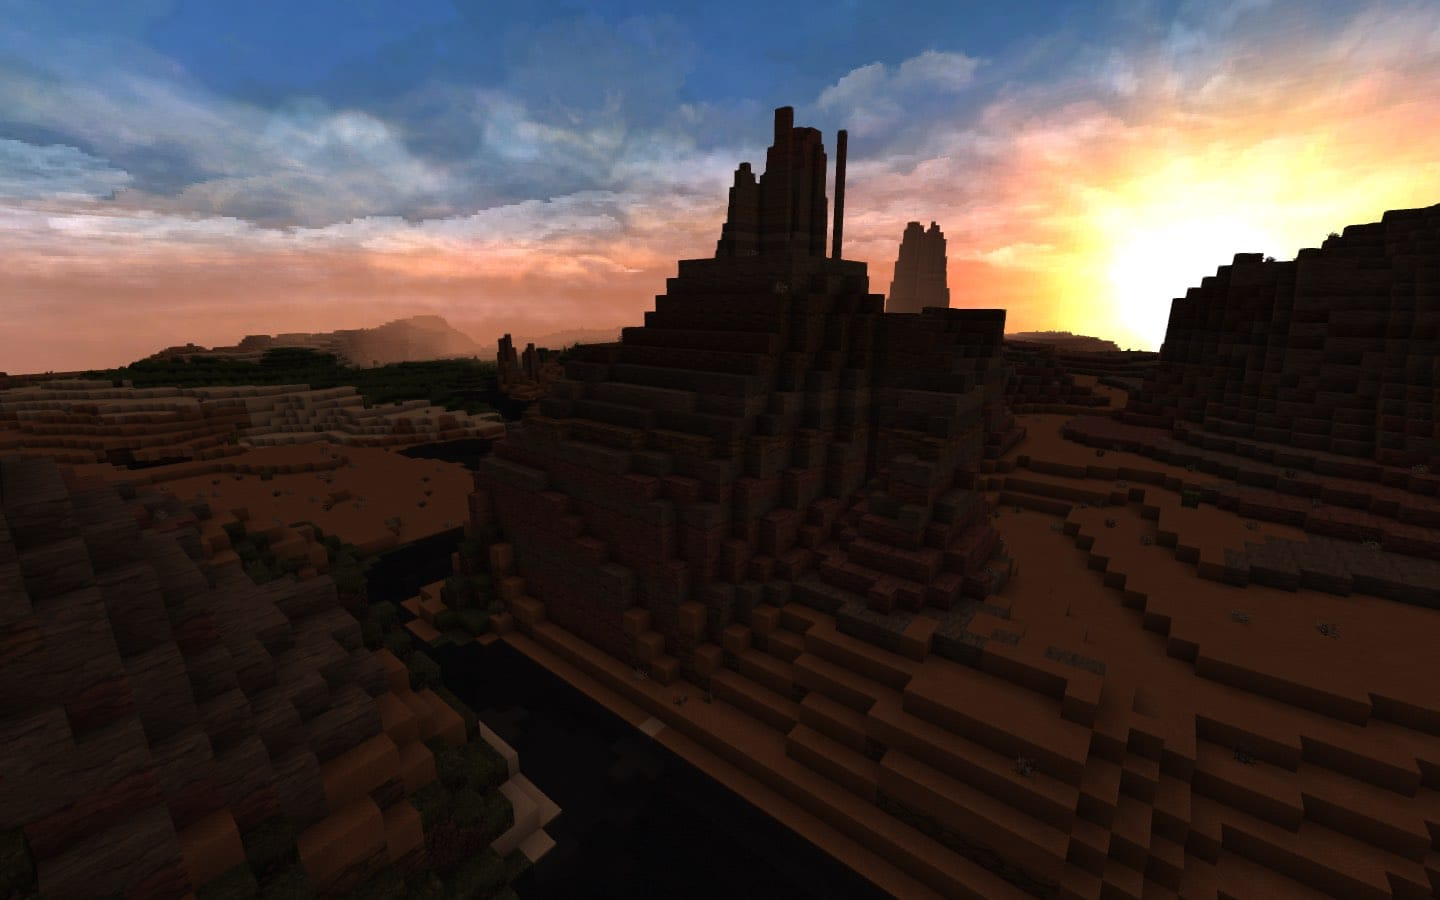 Mesa Biome Minecraft Optifine Conquest Texture Pack